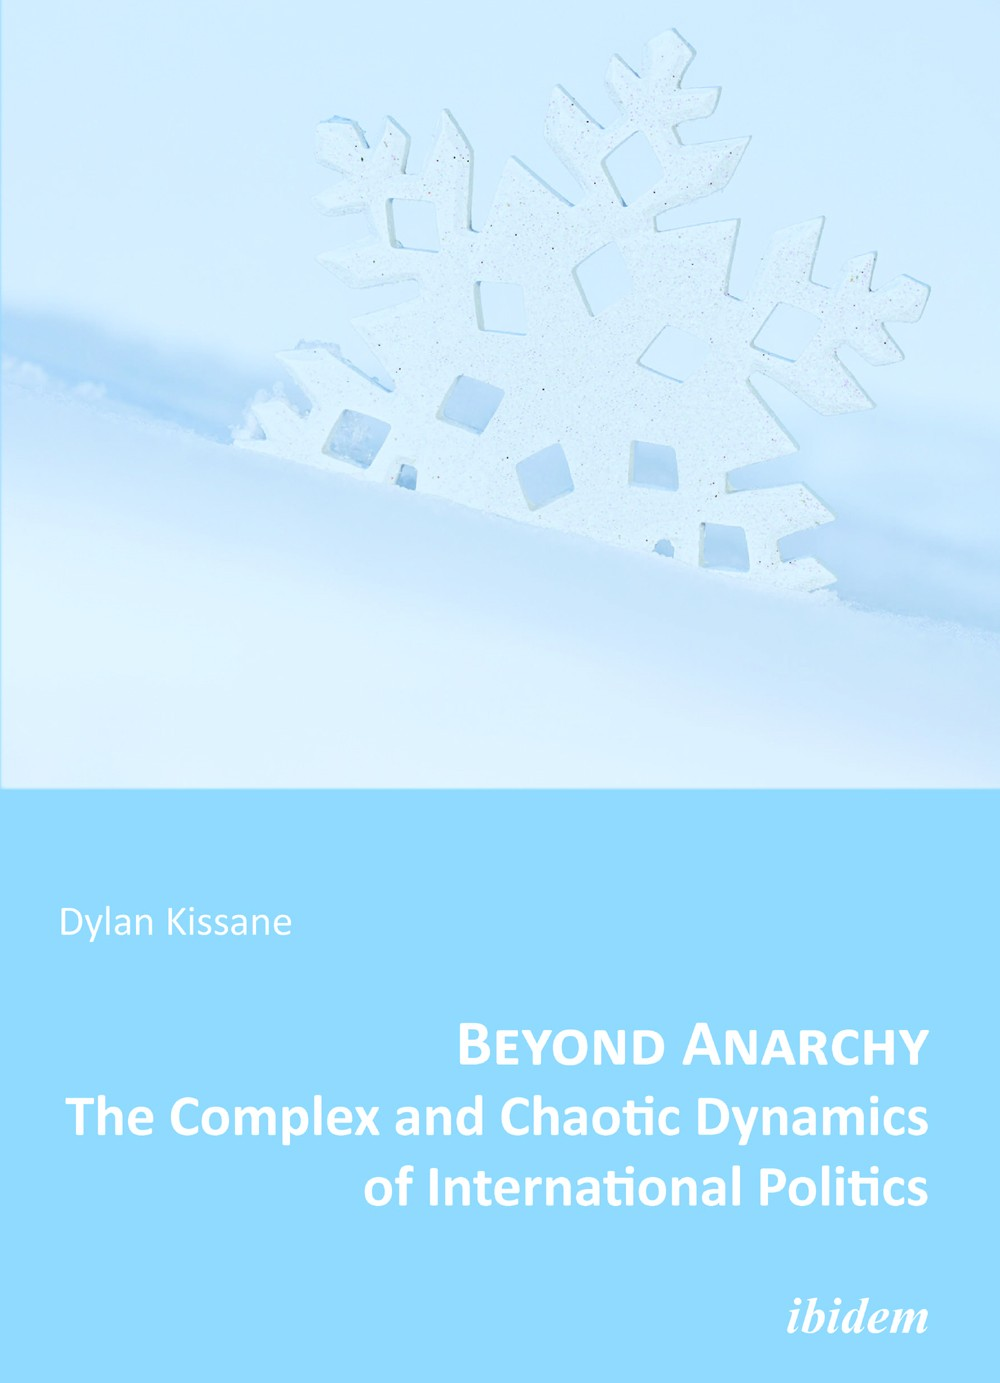 Beyond Anarchy: The Complex and Chaotic Dynamics of International Politics